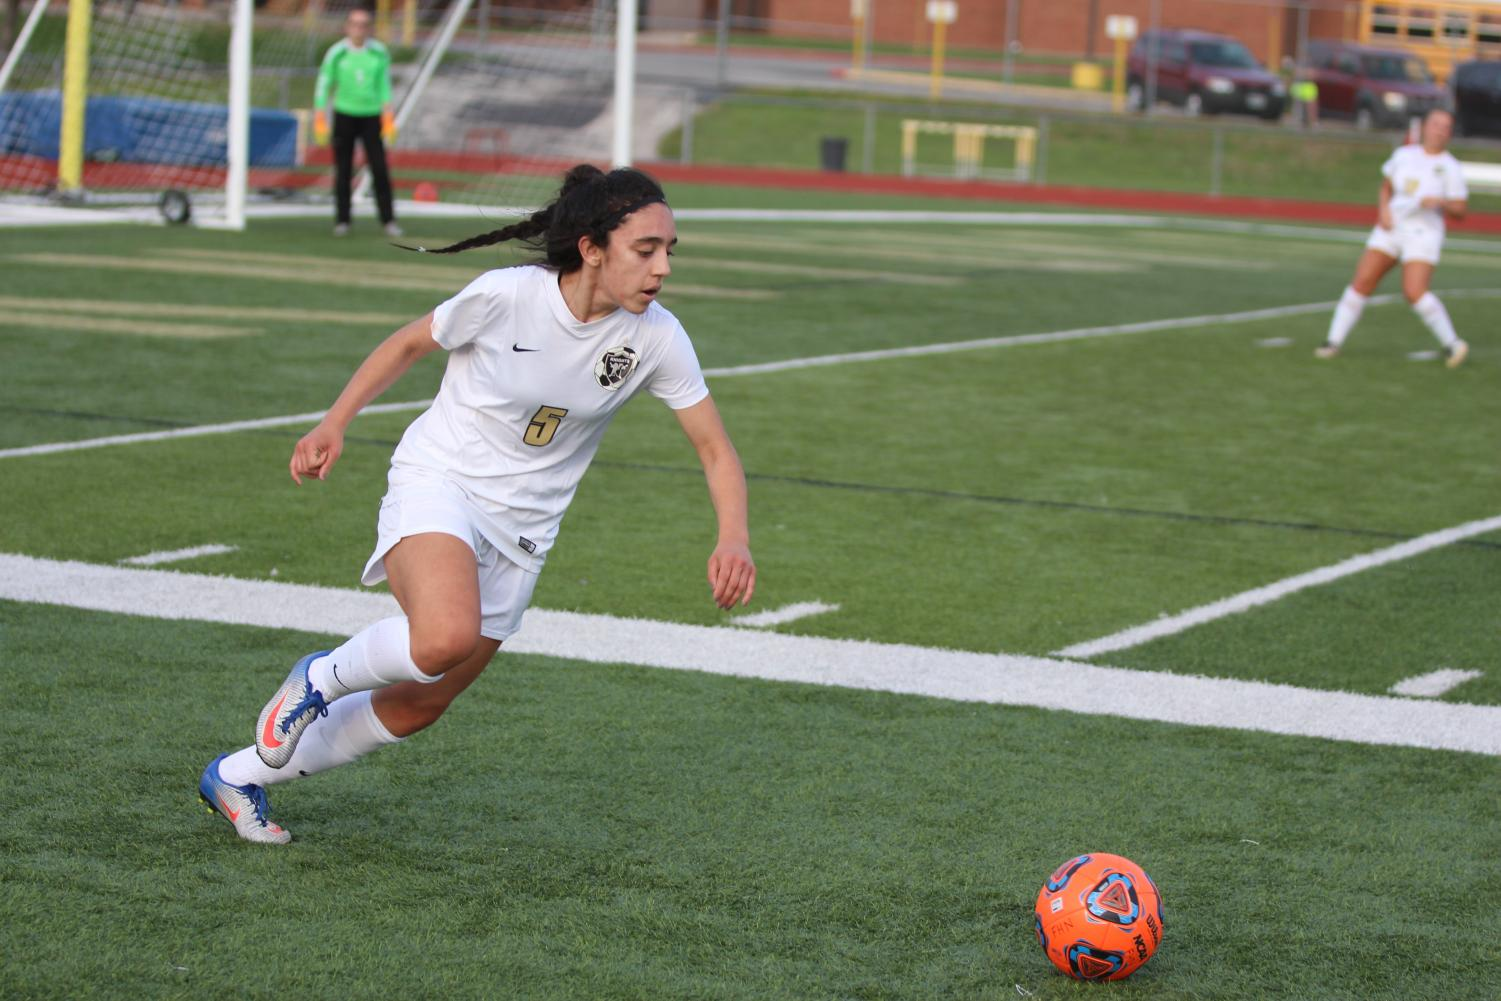 Sophomore wing back Lauren Shah prepares to knock the ball up the field in a match with FZW on 4/13.